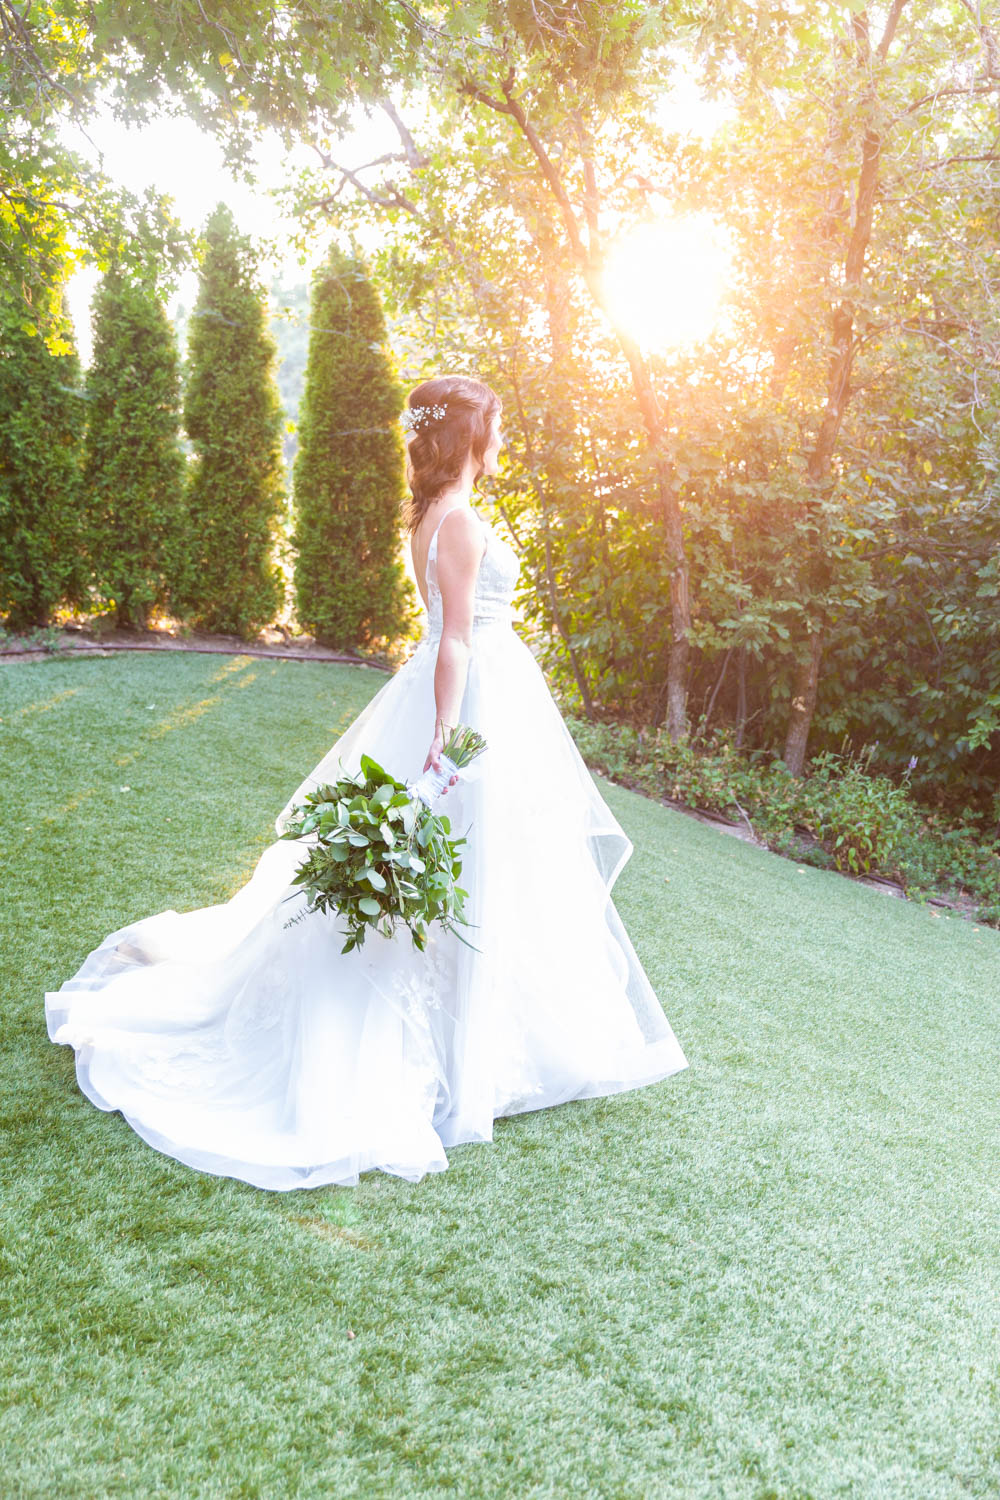 A bridal portrait at golden hour